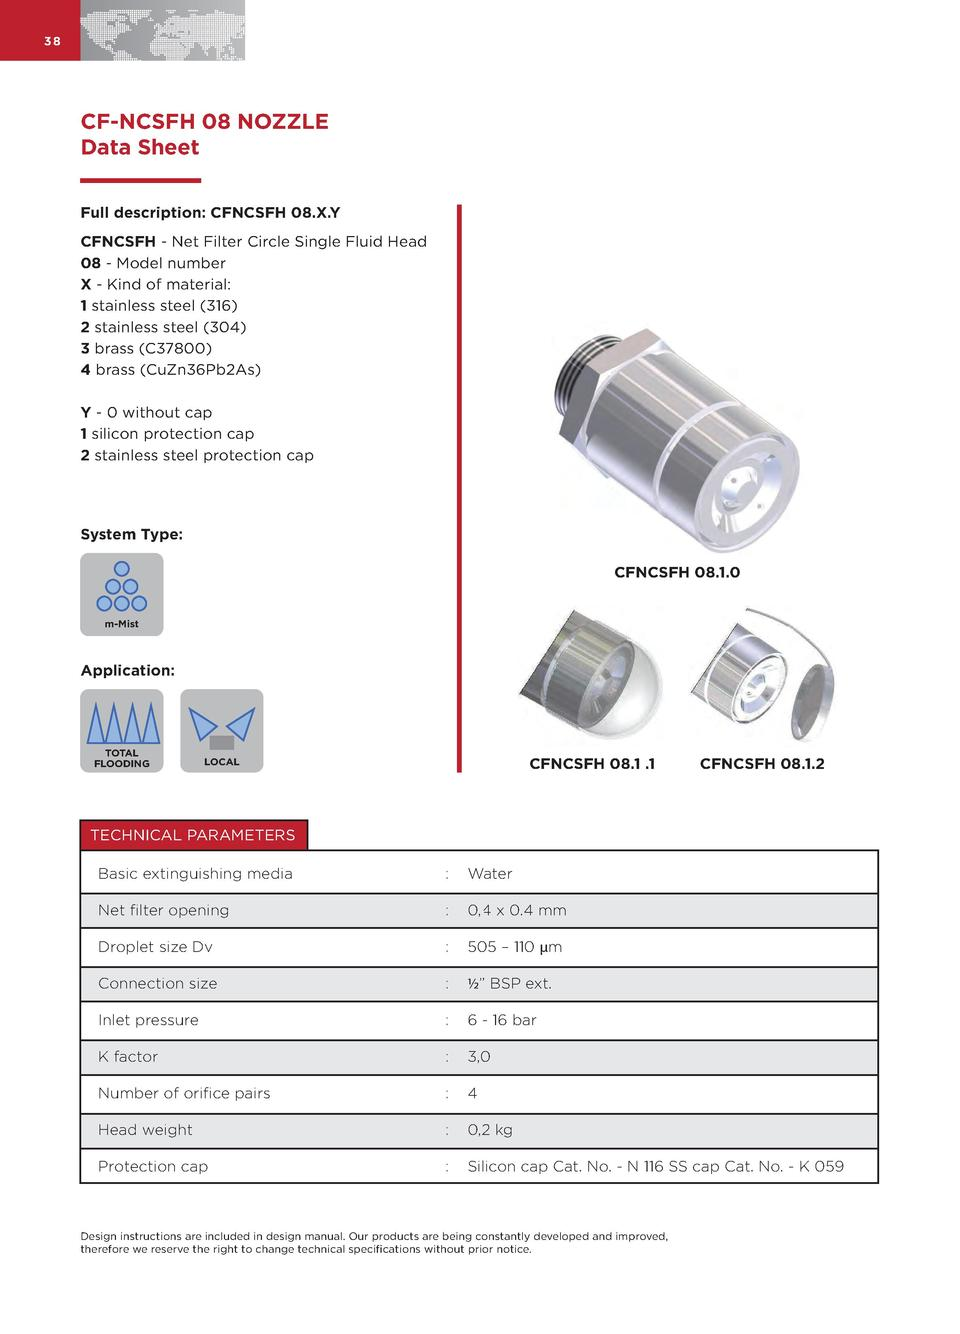 38  CF-NCSFH 08 NOZZLE Data Sheet Full description  CFNCSFH 08.X.Y CFNCSFH - Net Filter Circle Single Fluid Head 08 - Mode...